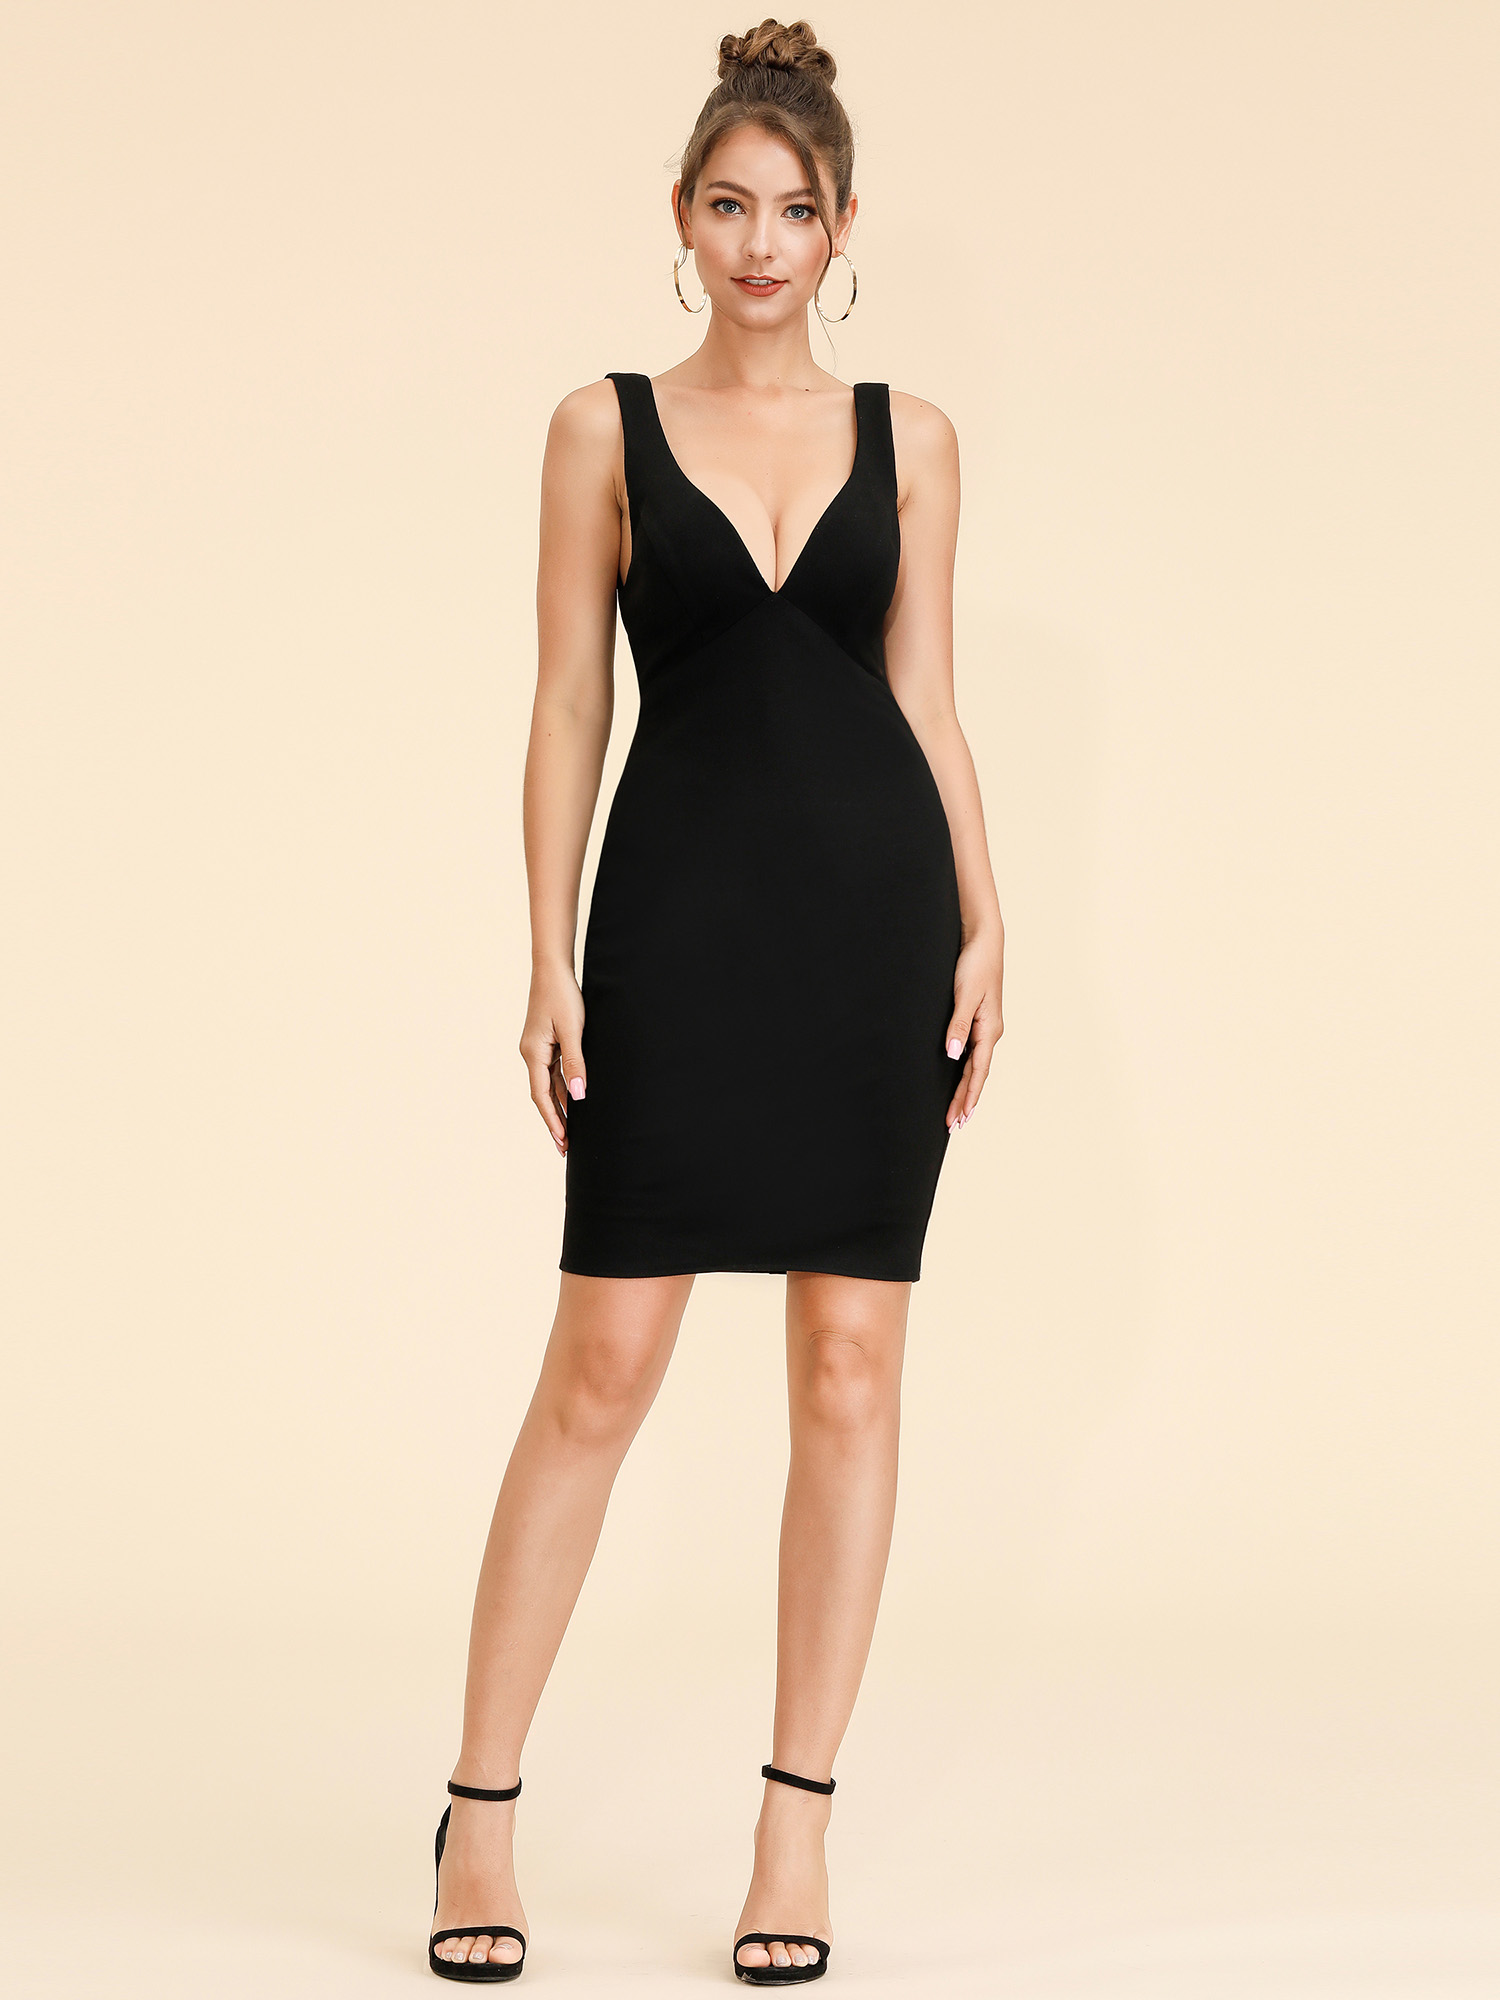 879c8d2a2707 Ever-Pretty Women s Sexy Short V Neck Bodycon Cocktail Party Night Club  Dress 05851